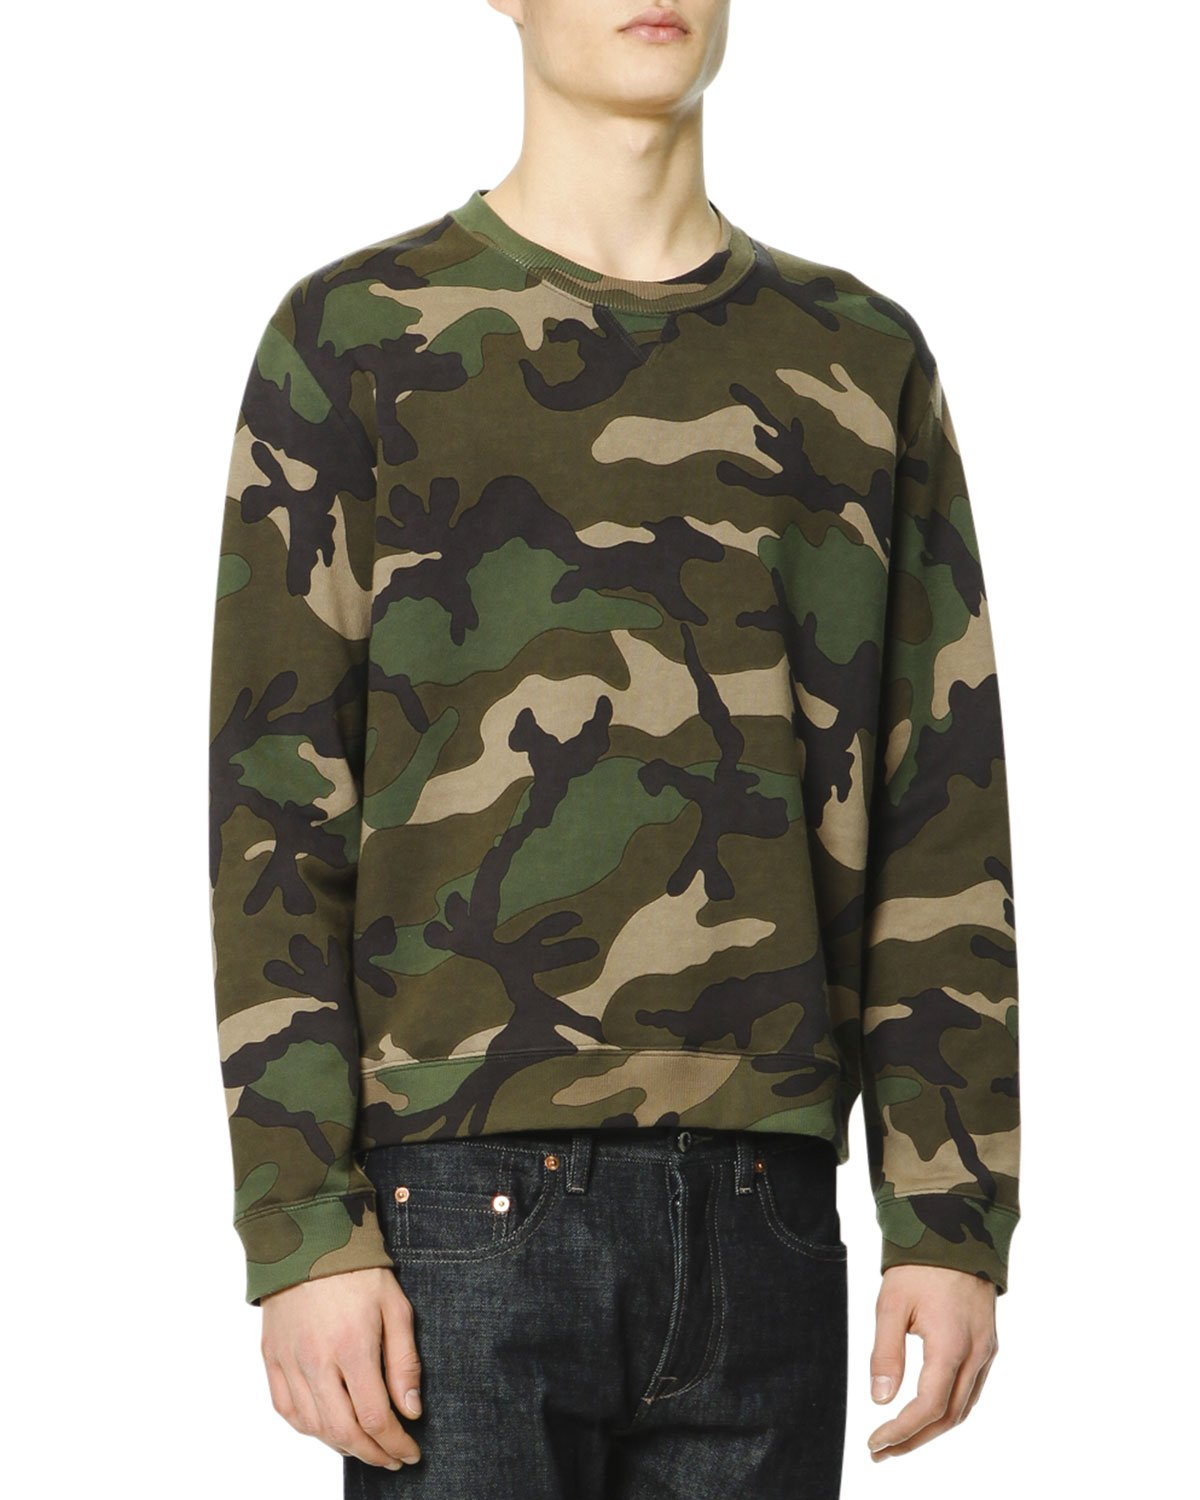 Lyst - Valentino Camo-print Sweatshirt in Green for Men b87bdc93621